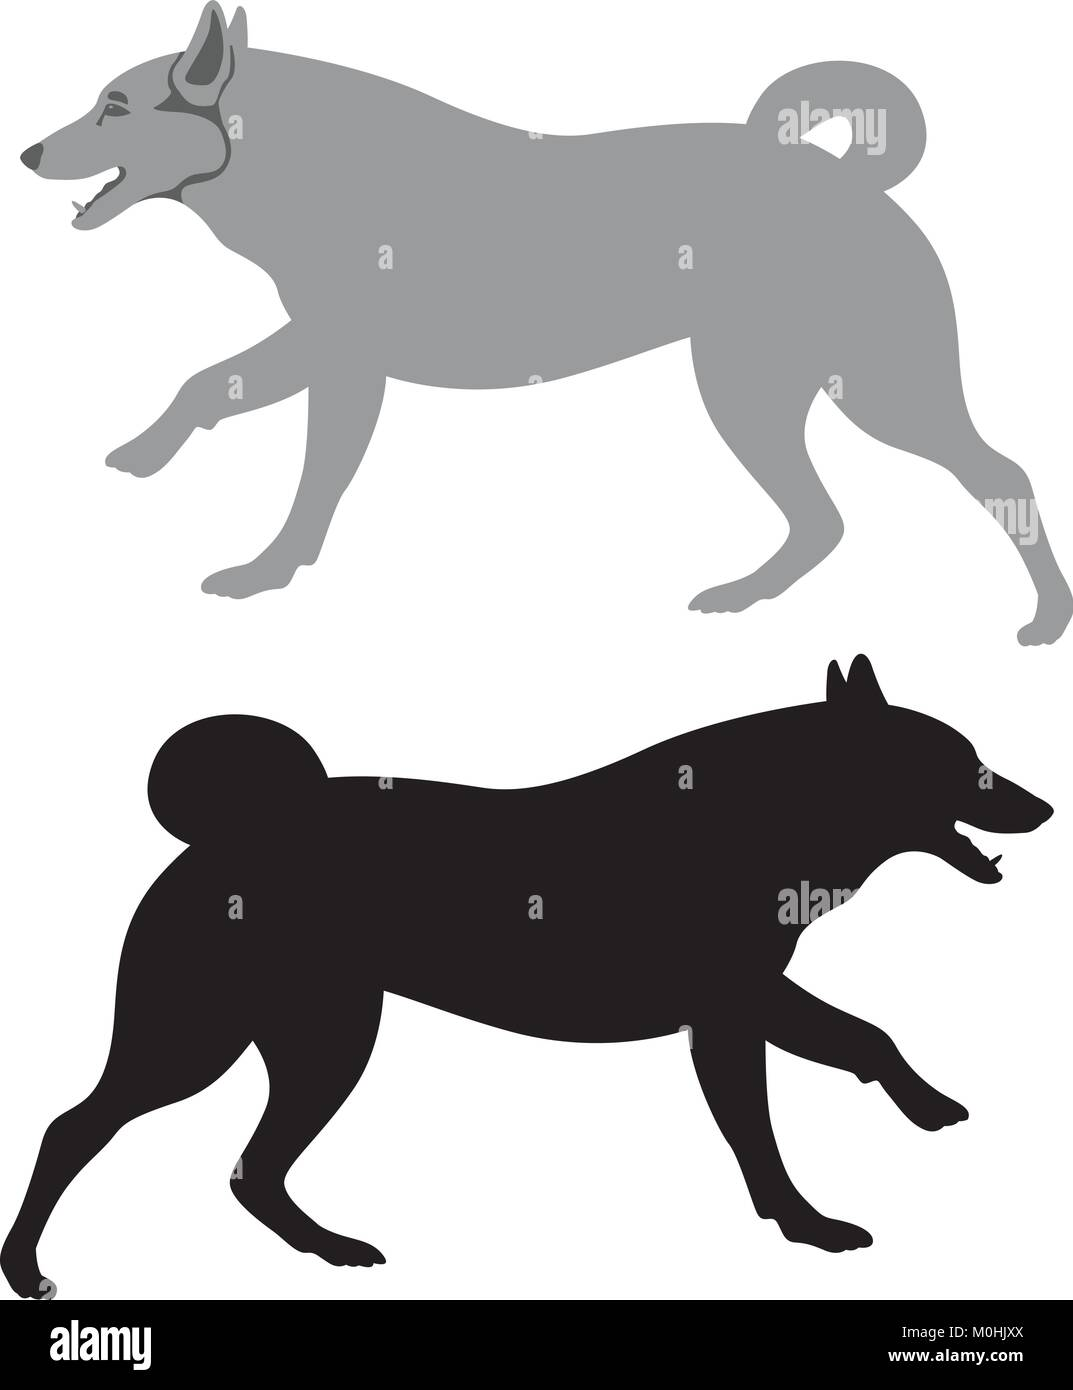 dog vector illustration flat style black silhouette set - Stock Vector